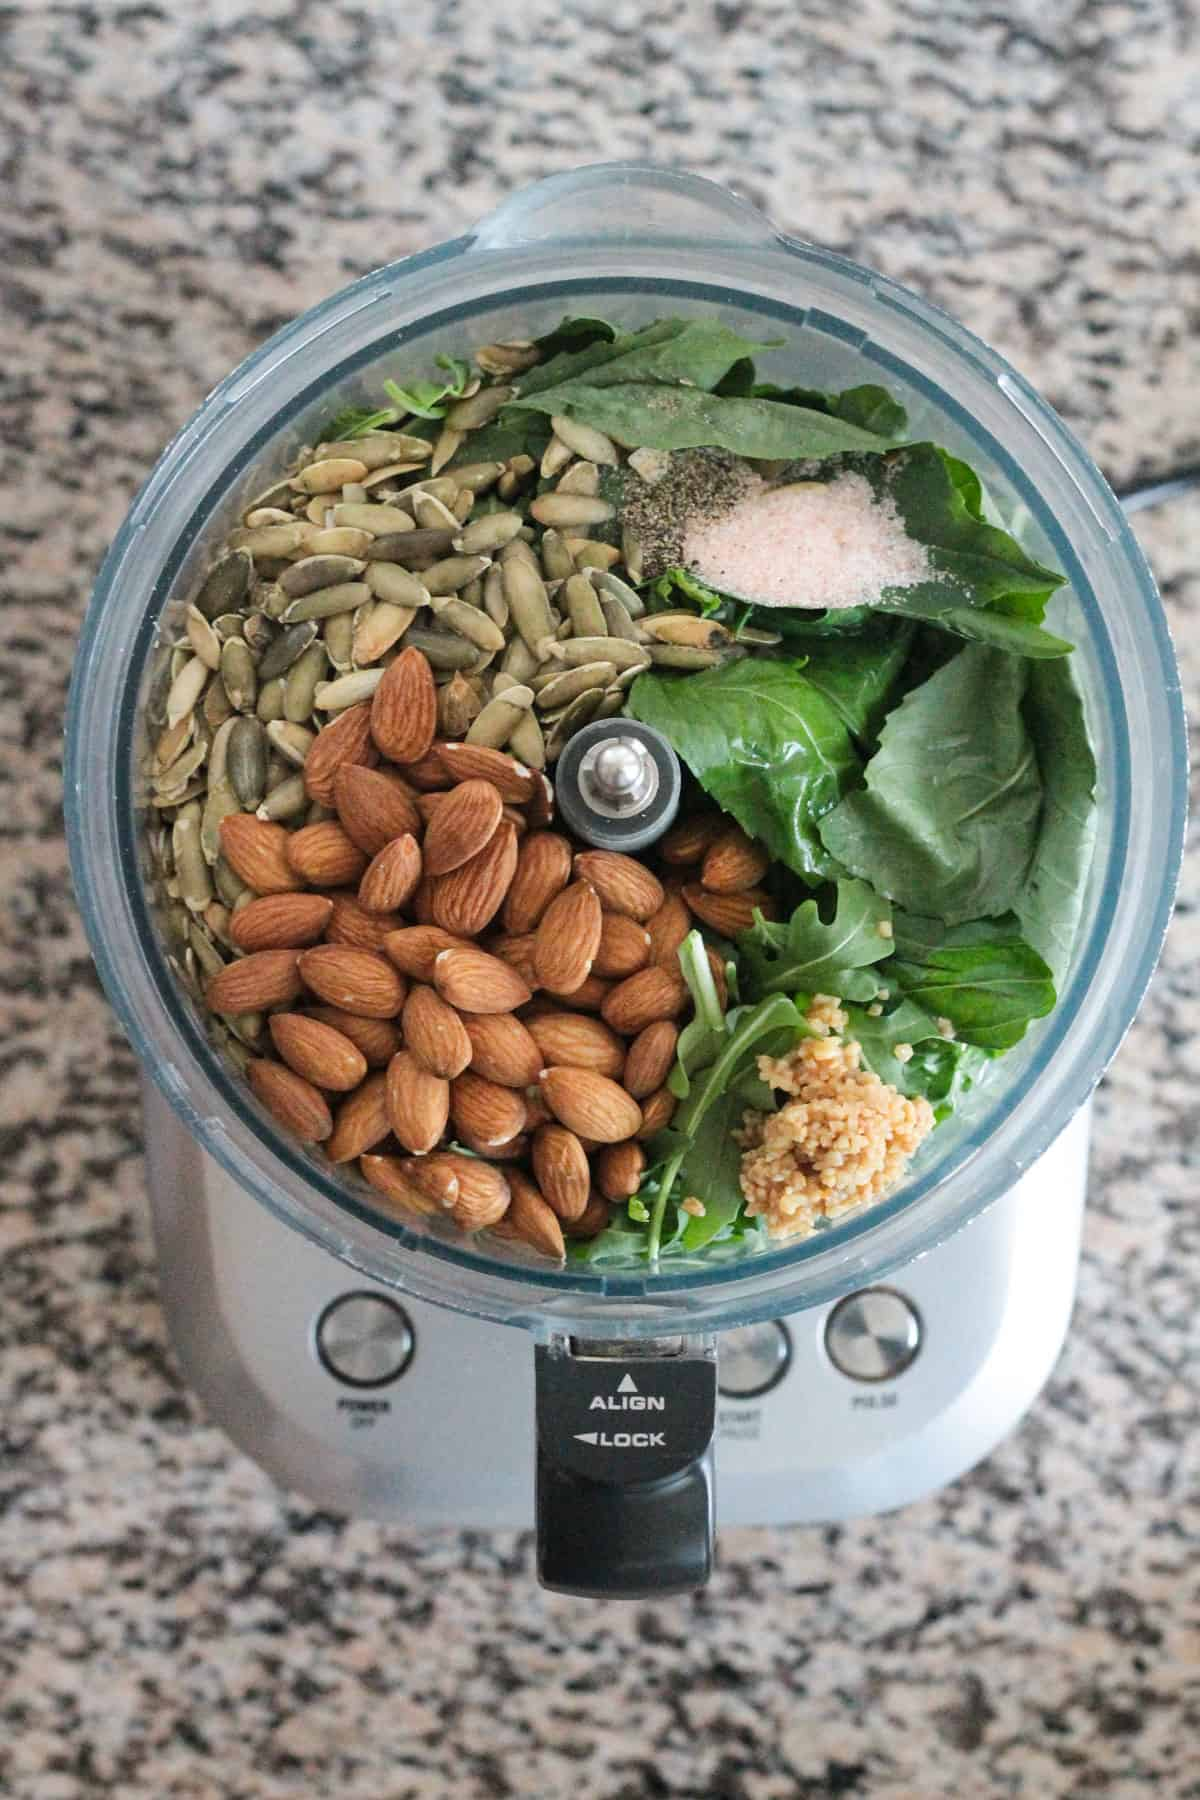 Recipe ingredients in a food processor.